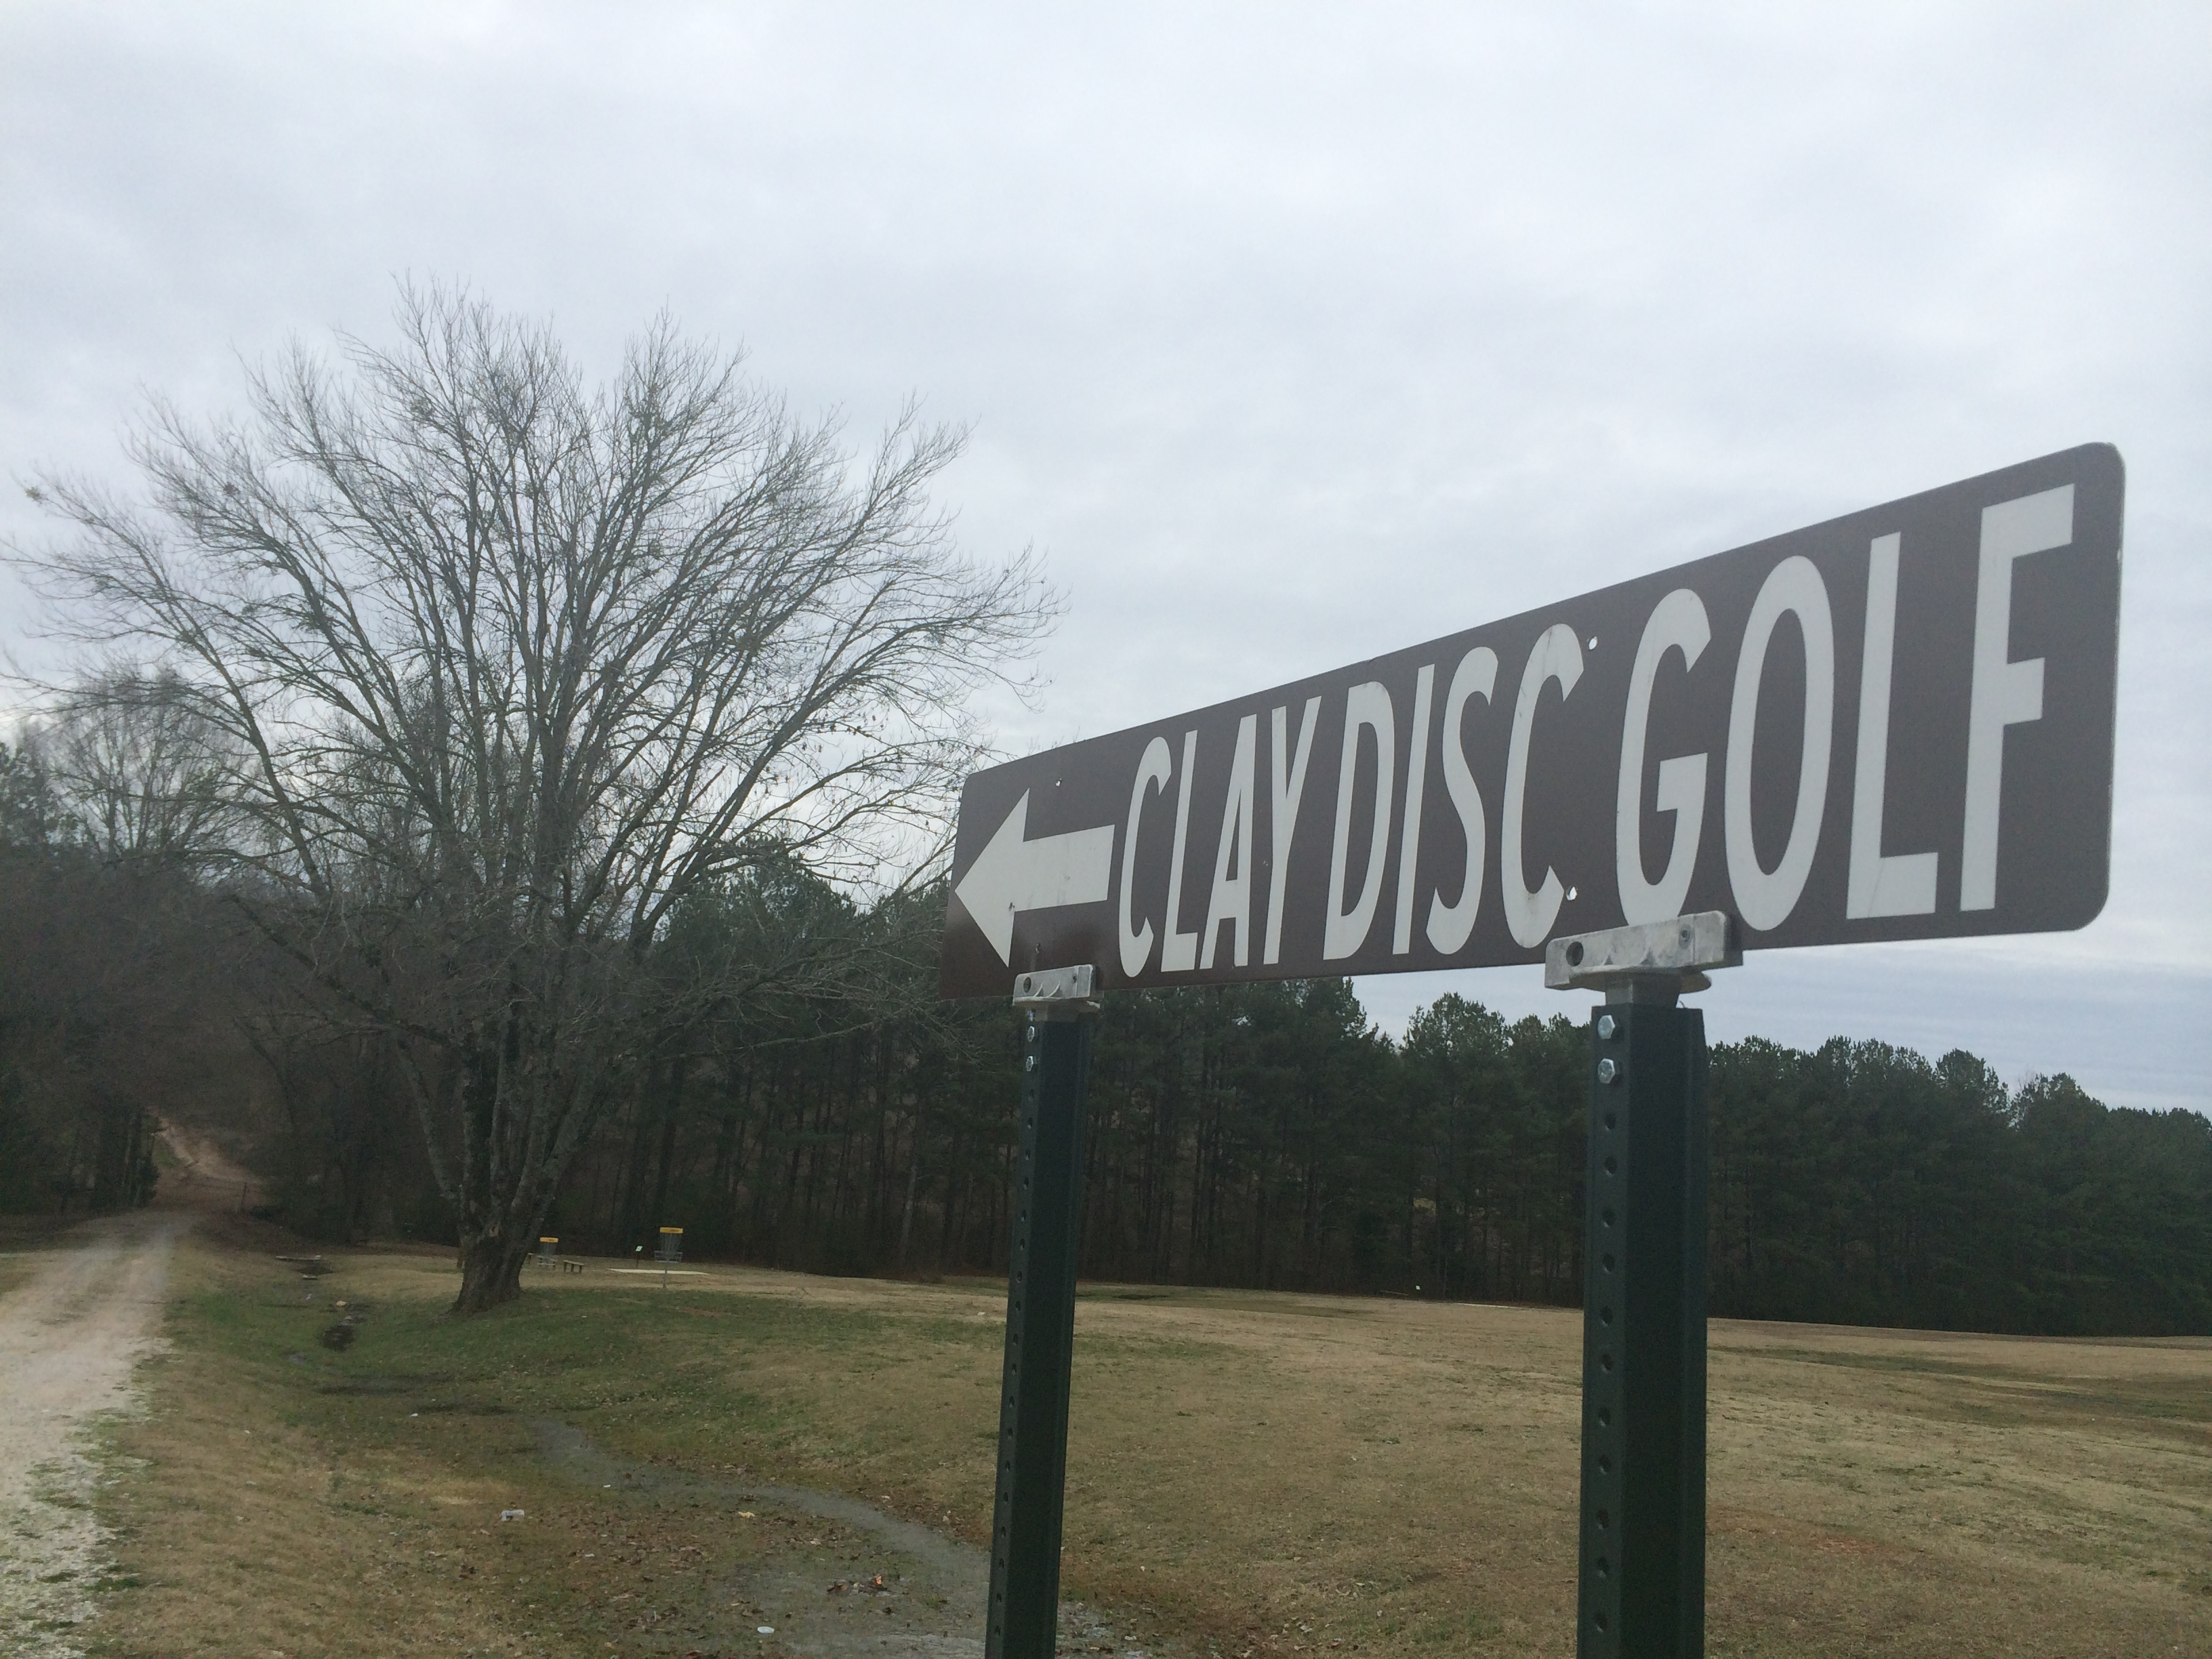 Clay disc golf course, still in infancy, already one of top courses around